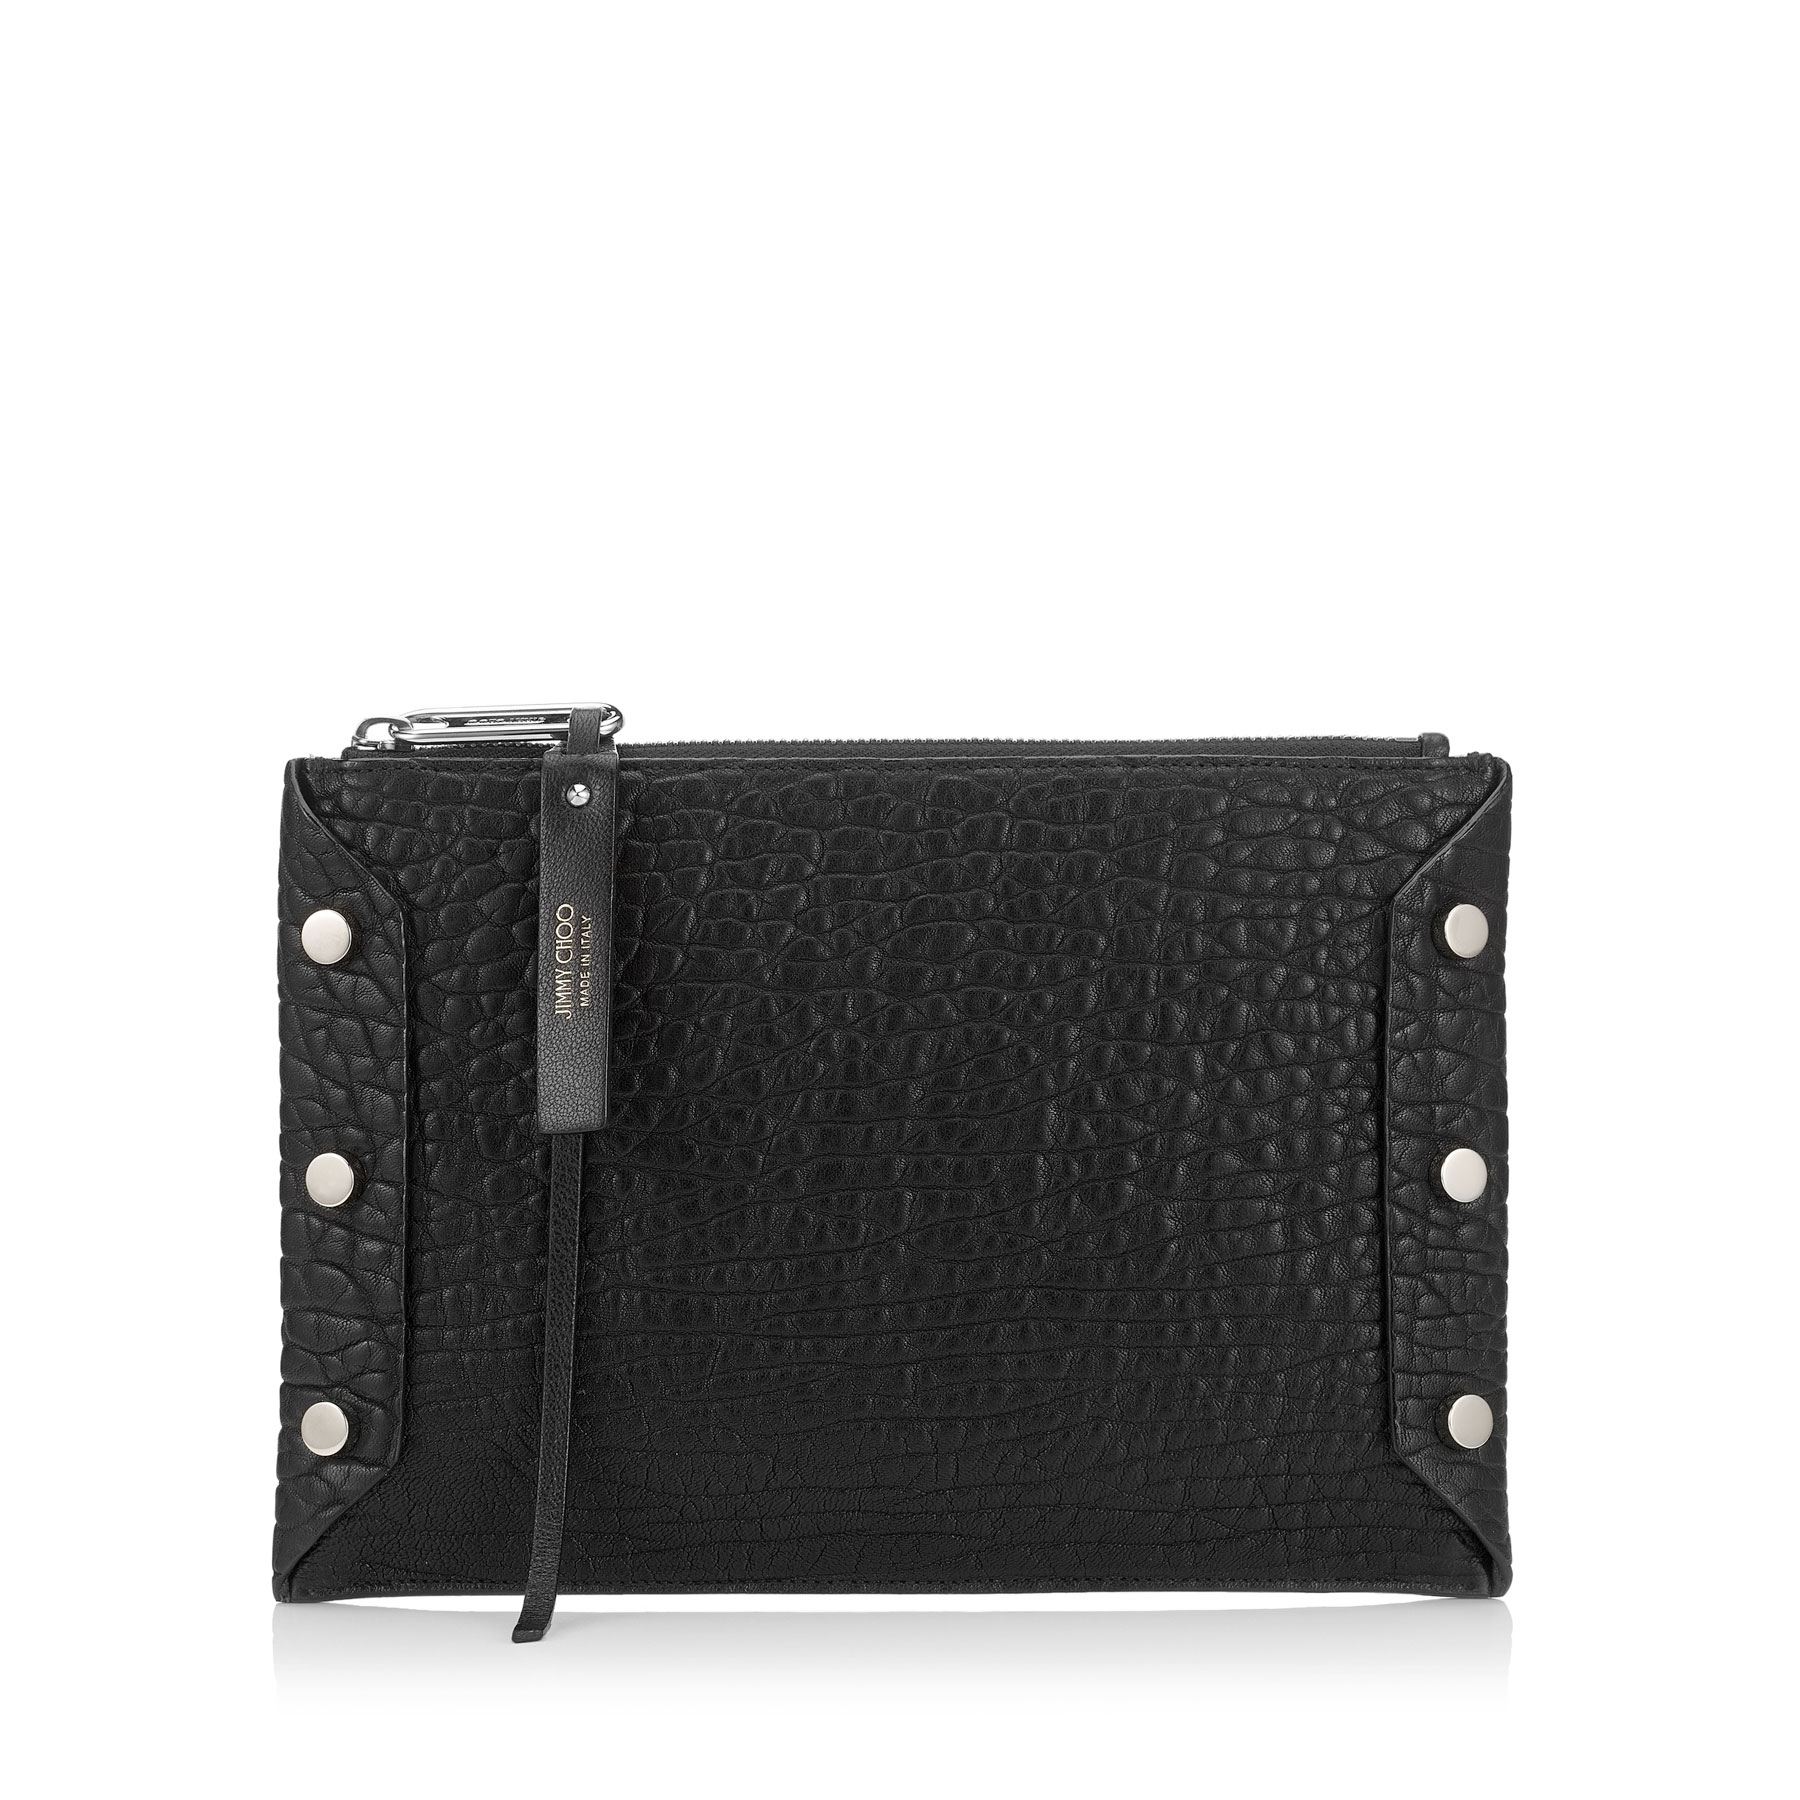 LINDY Black Grainy Leather Pouch